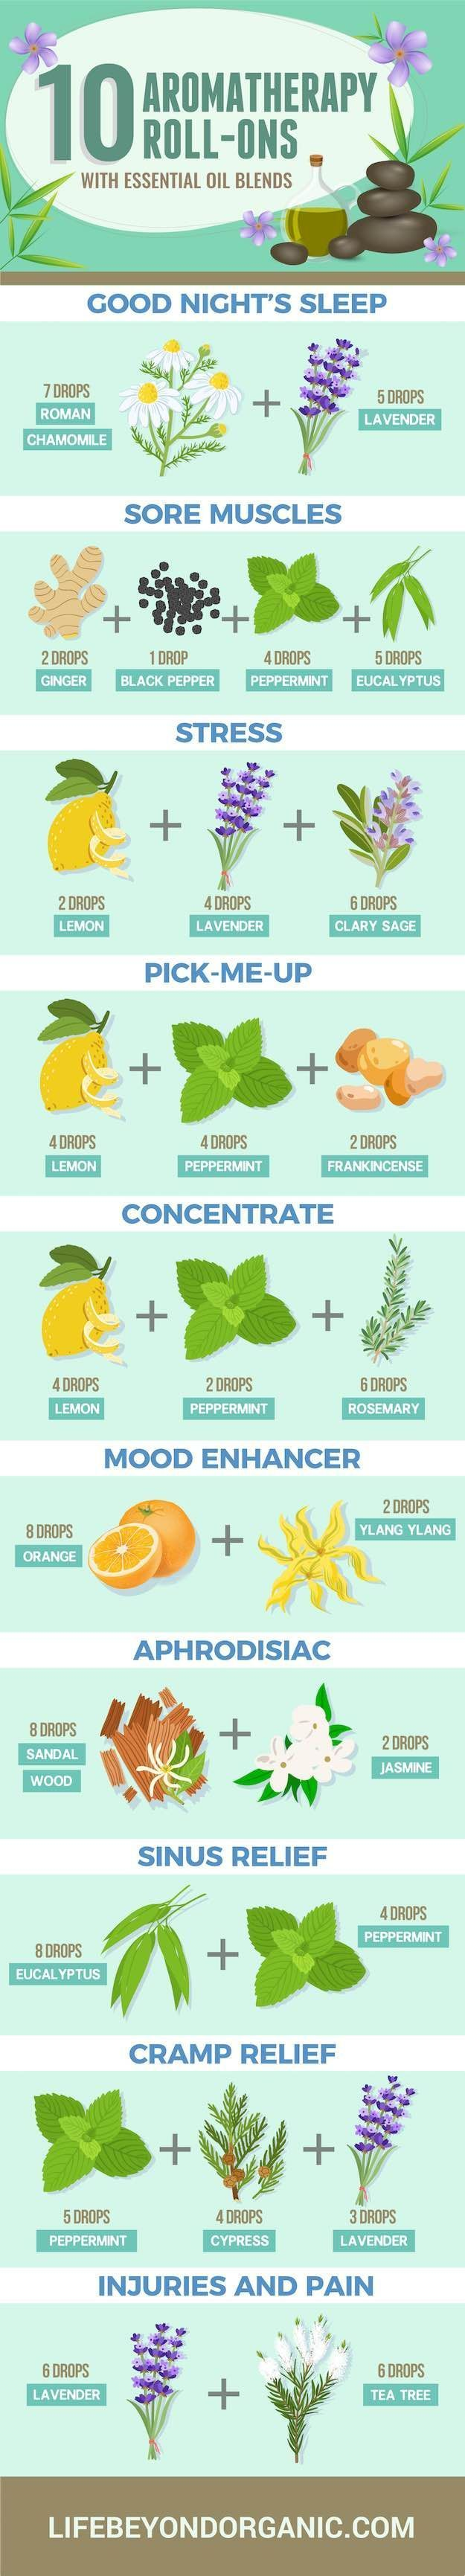 There are many different uses when it comes to essential oils and their aromatherapy advantages. The ones mentioned above are simply my top 10 favorites. Try starting with these for now. Once you've found how useful essential oils can be, don't forget to keep coming back to our page to read up on the other ways you can benefit!